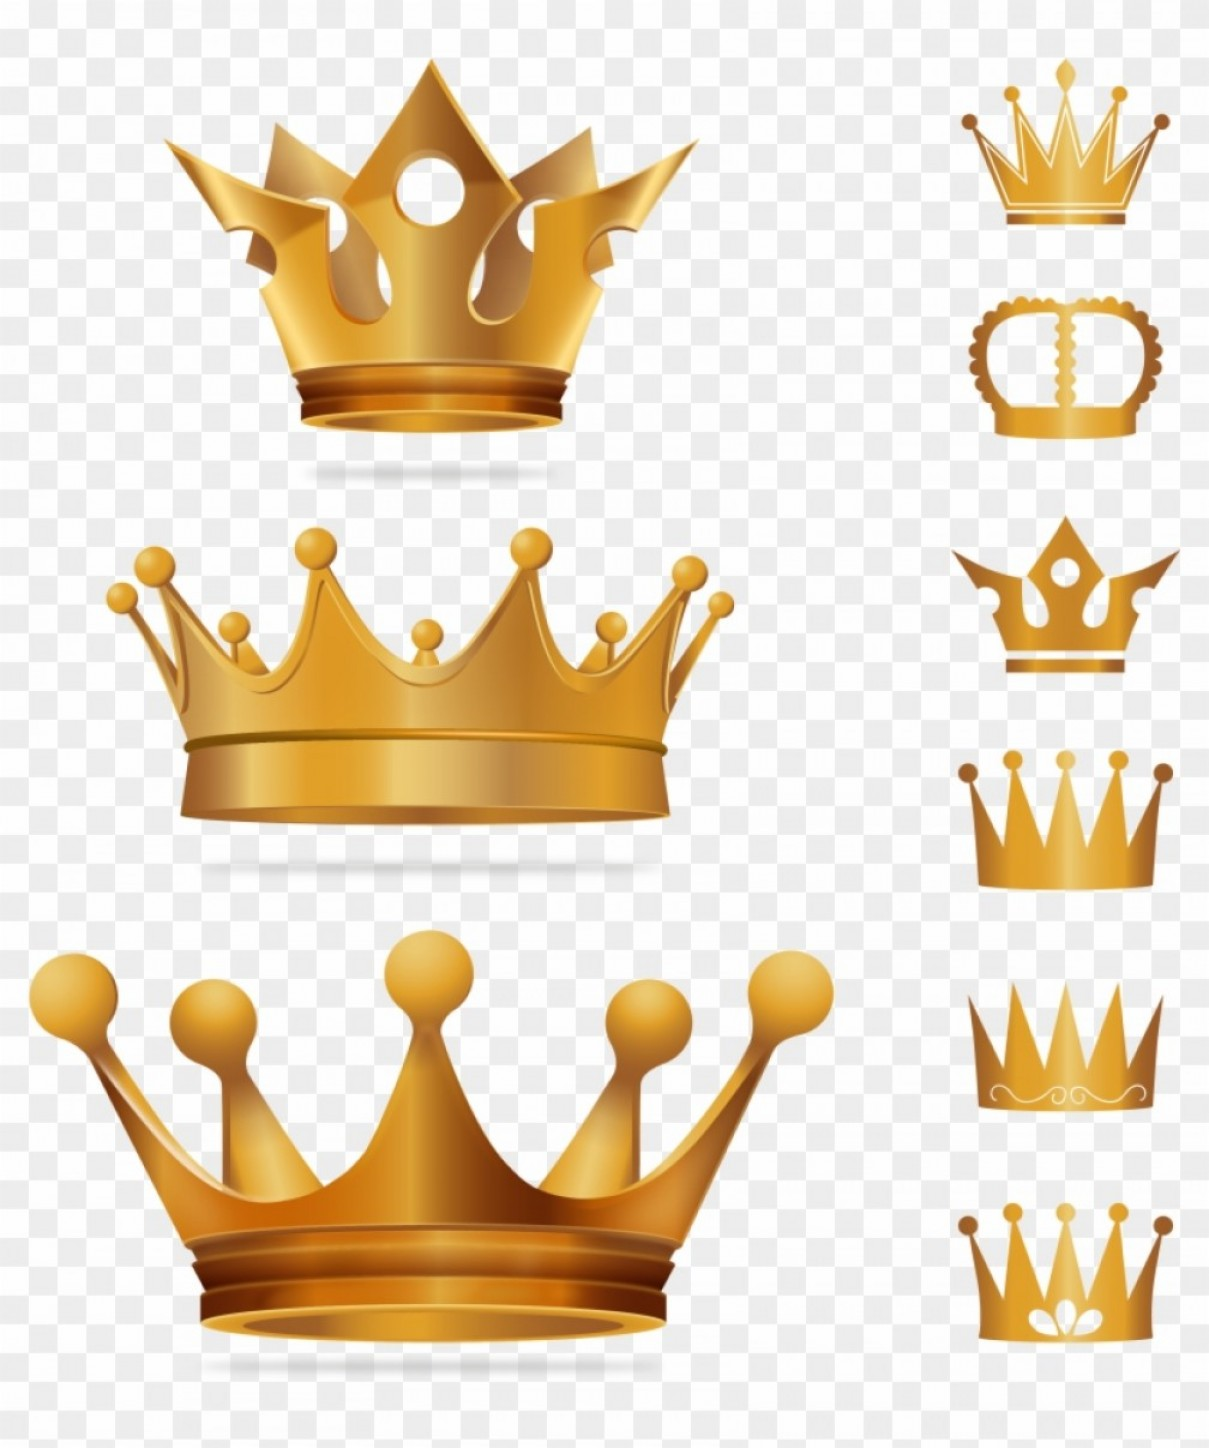 Transparent Queen Crown Vector: Migdmakhcrown Euclidean Vector Royal Queen Crown Png